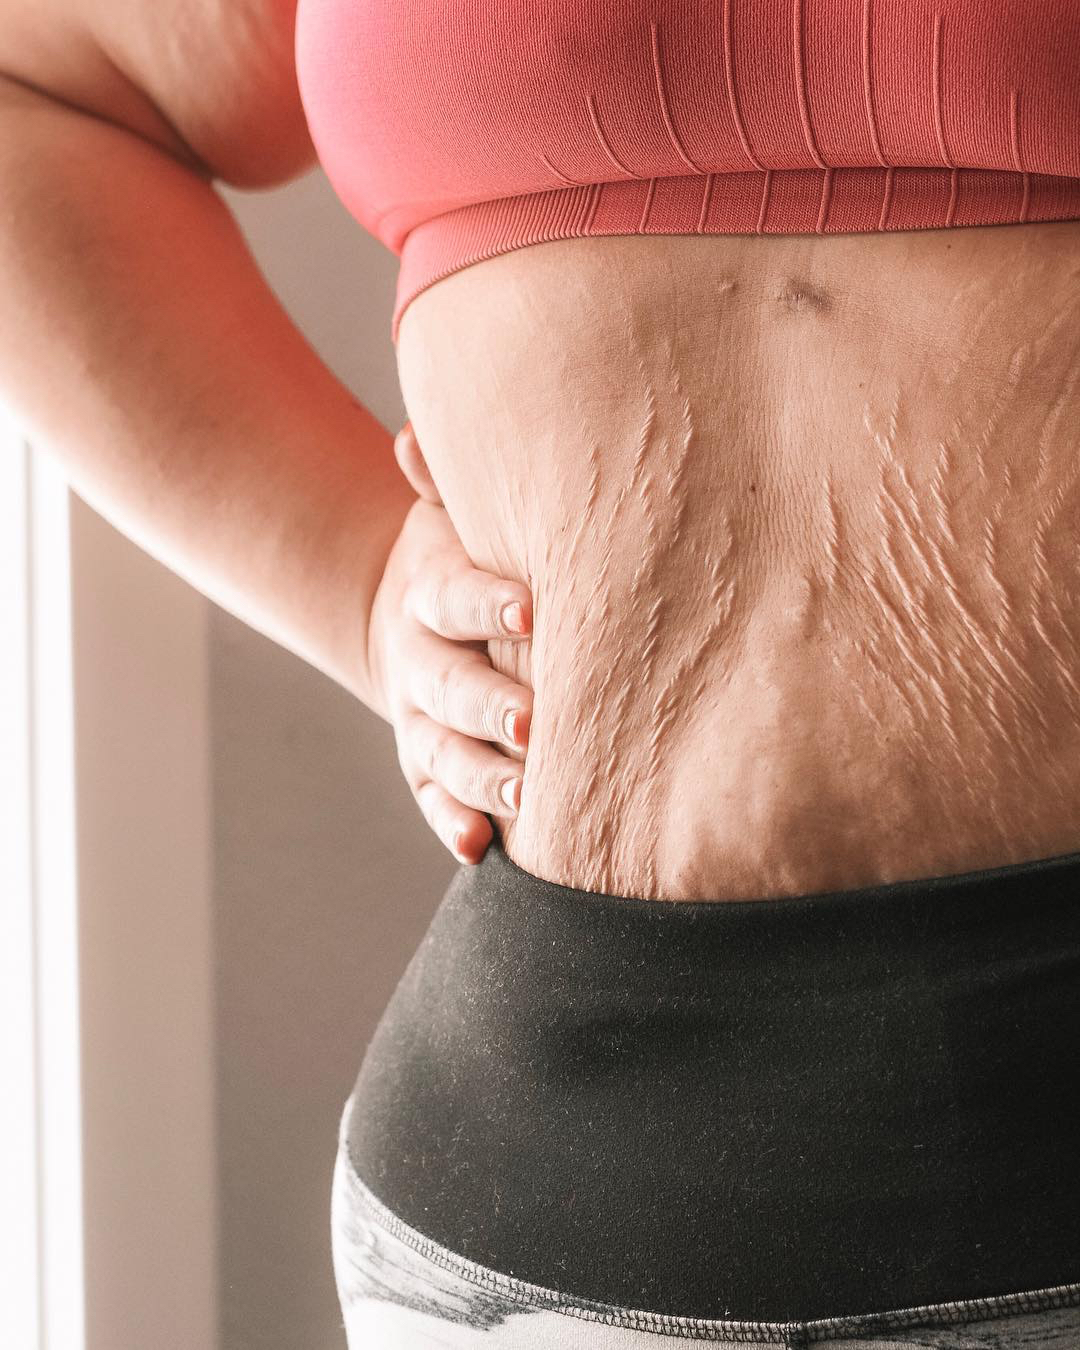 This Mom Shares Unedited Photos of Her Cellulite and Stretch Marks to Send a Message About Postpartum Bodies